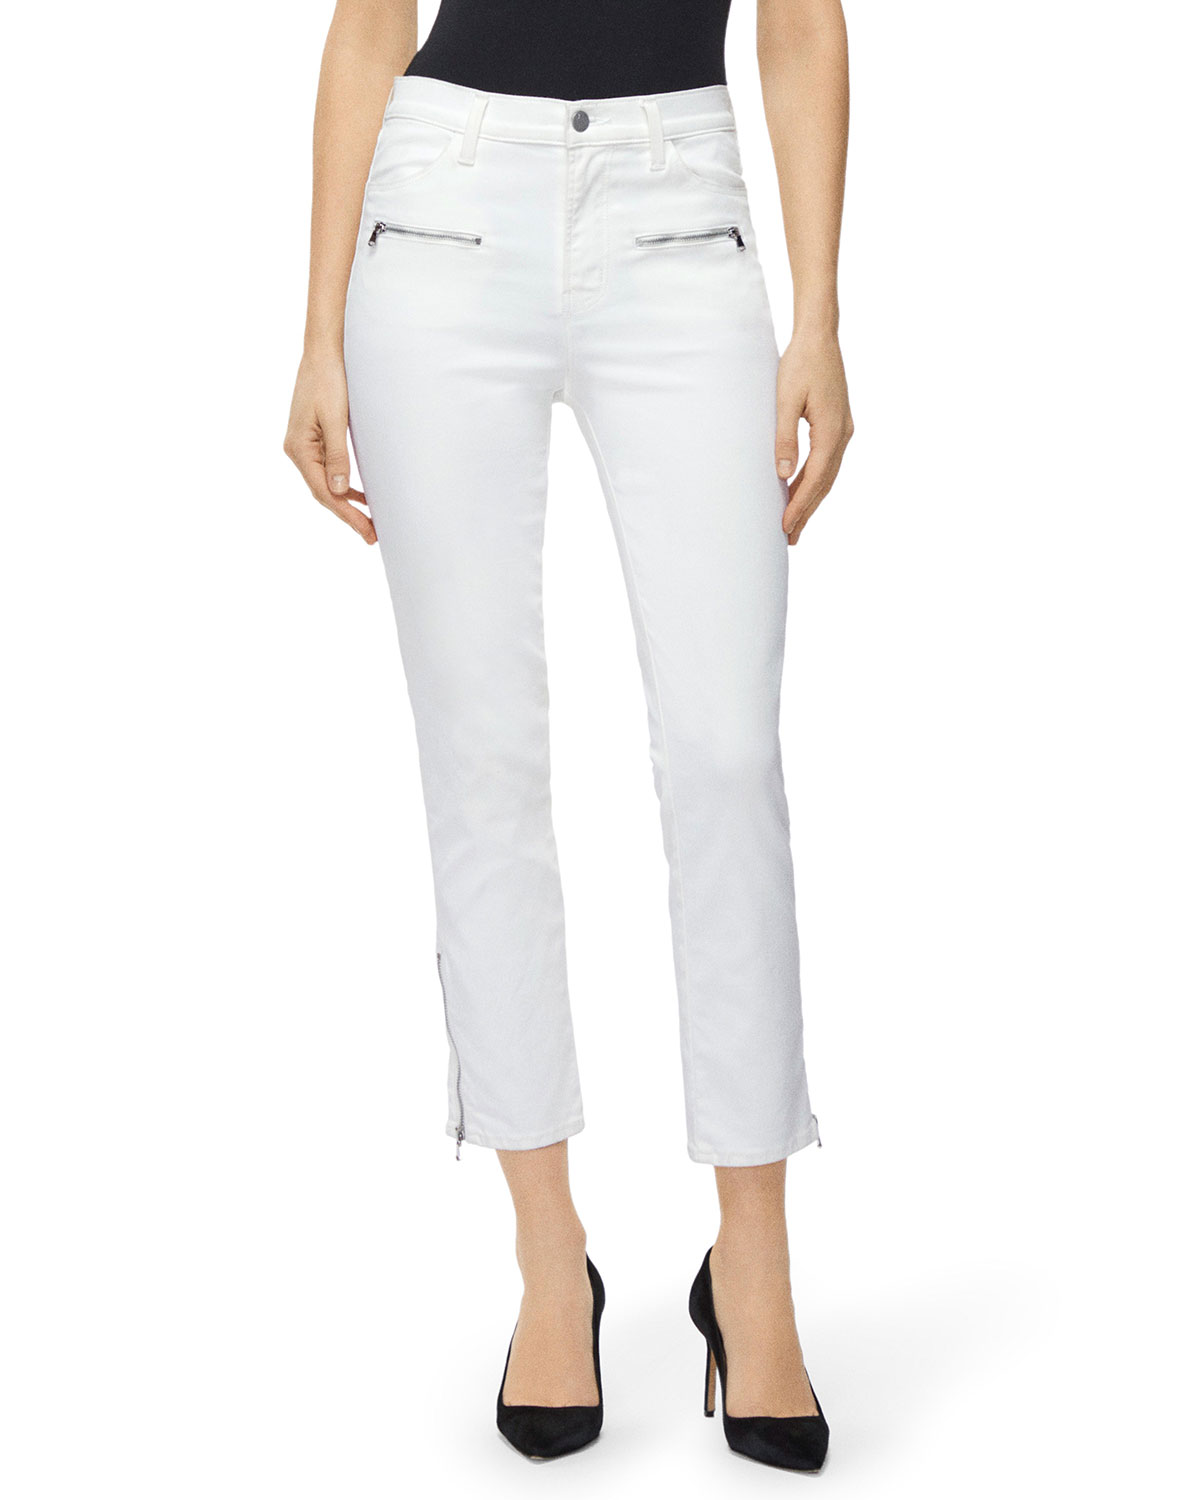 J Brand Jeans RUBY MOTO SKINNY ANKLE JEANS